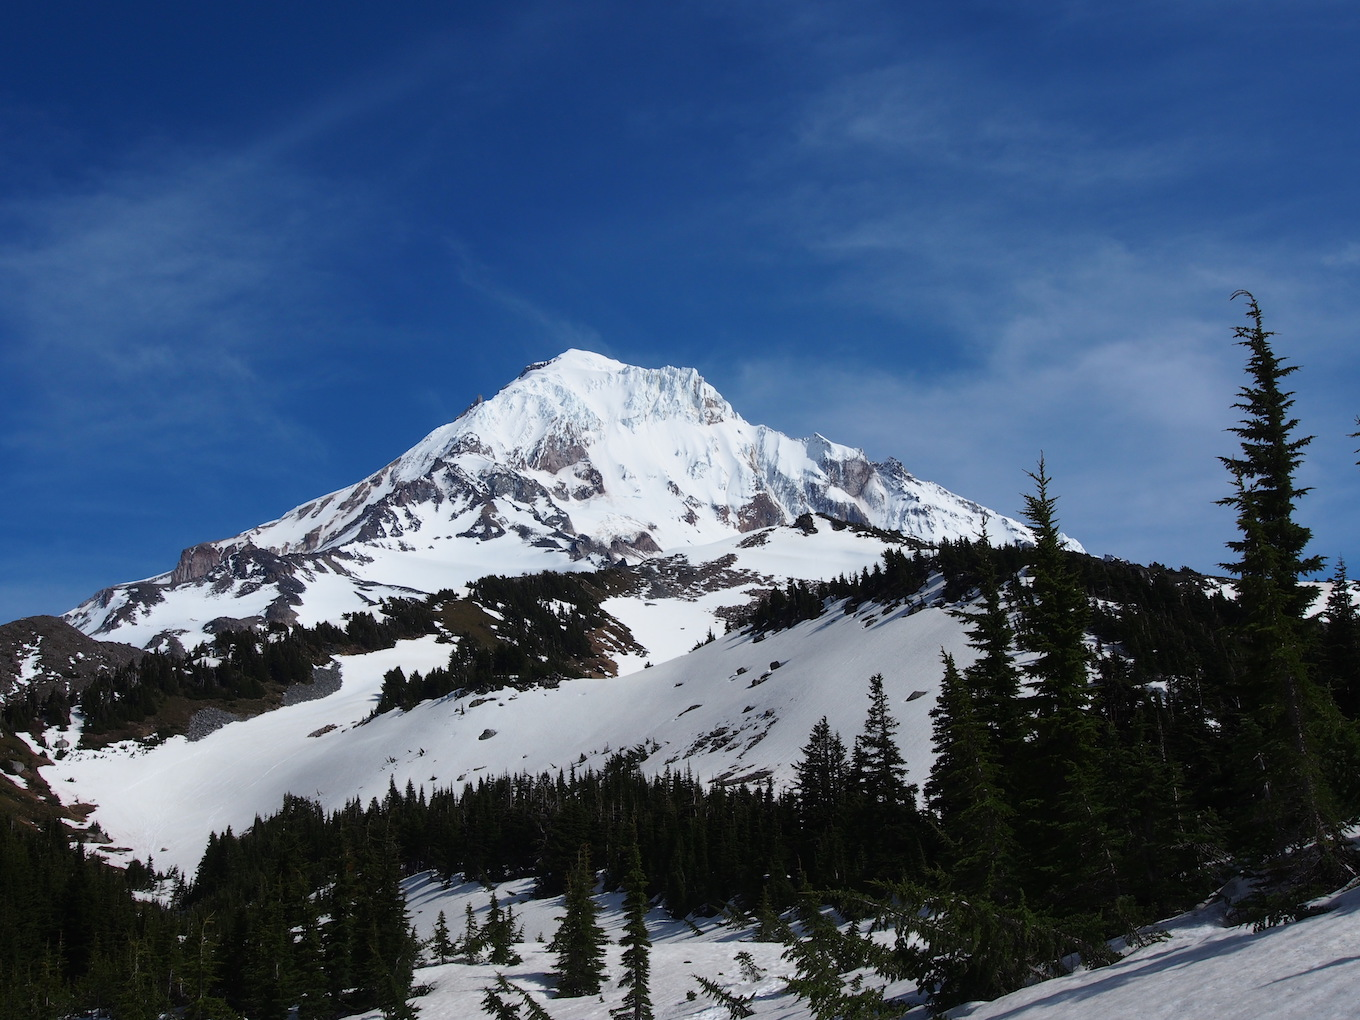 A close-in photo of a snow-covered mountain.